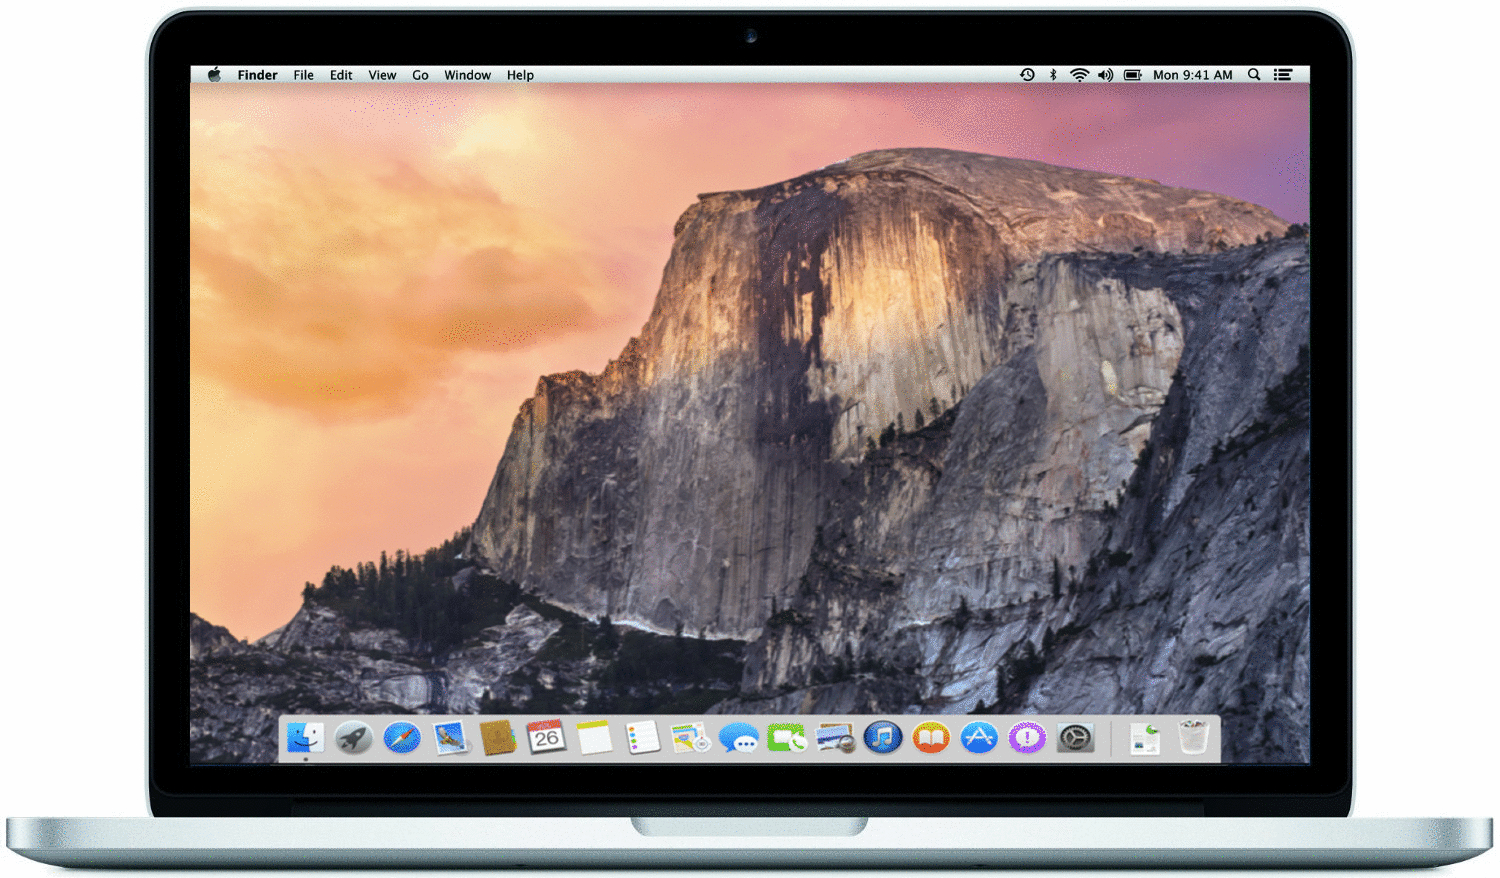 Apple MacBook Pro CTO 13.3 (Retina Display) 2.7 GHz Intel Core i5 16 GB RAM 256 GB PCIe SSD [Early 2015]